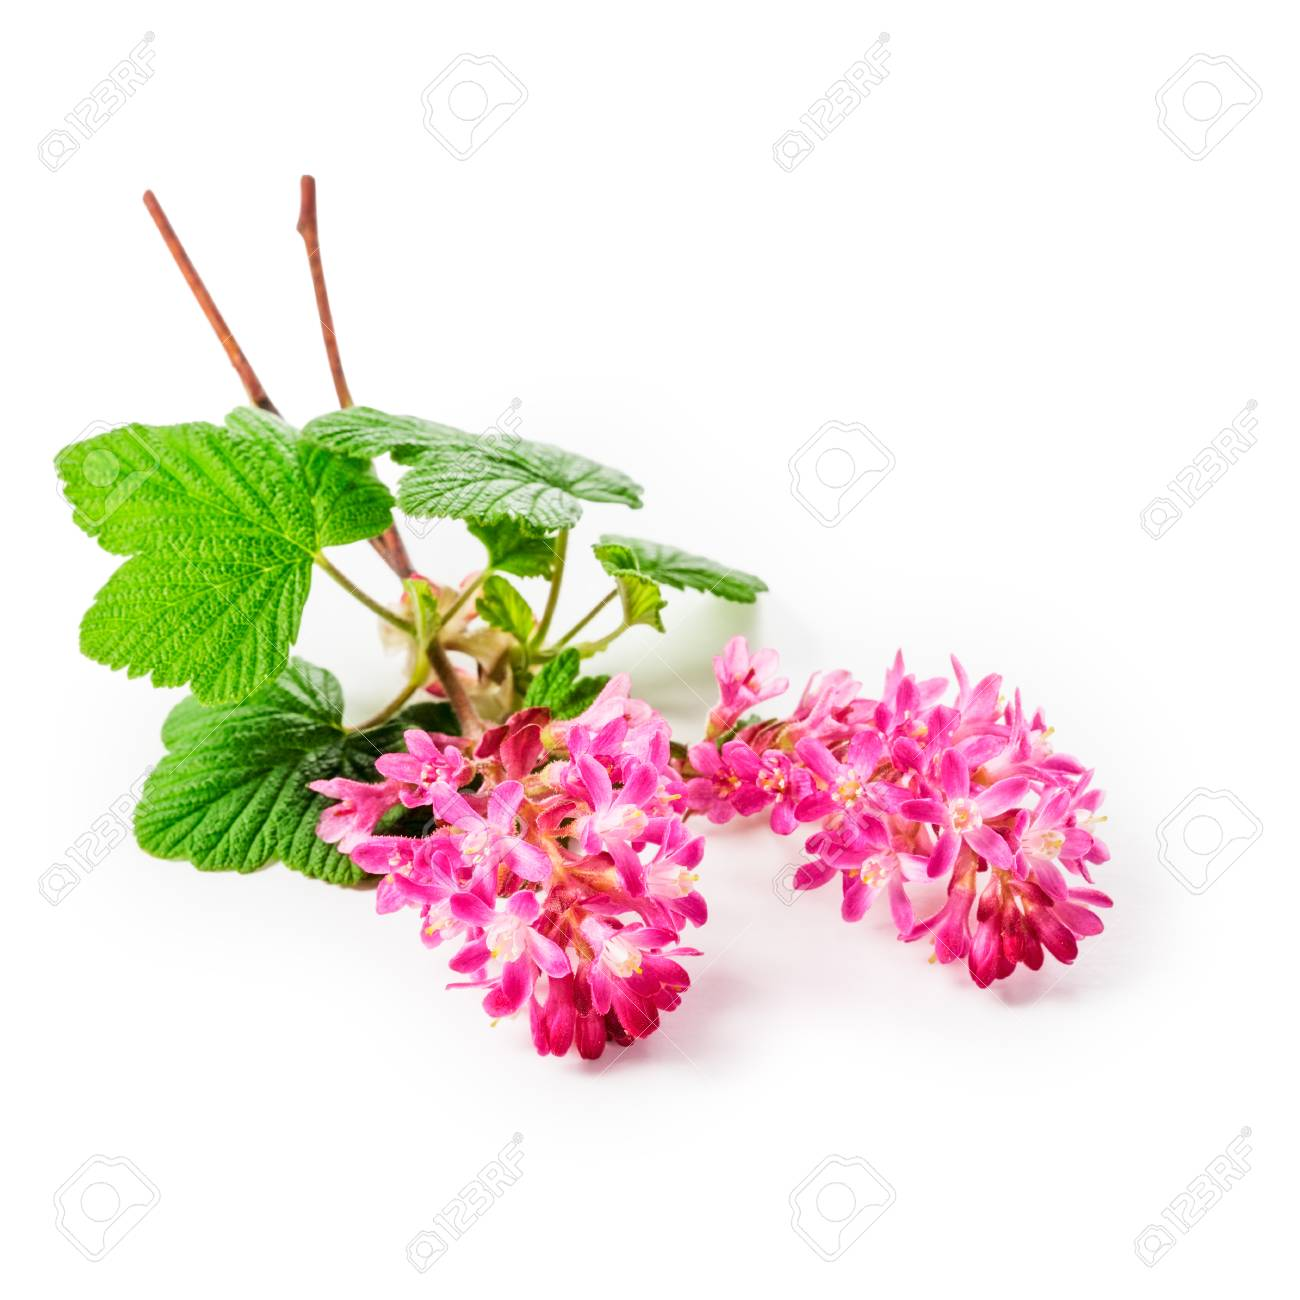 Flowering currant twig with pink flowers isolated on white flowering currant twig with pink flowers isolated on white background clipping path included ribes sanguineum mightylinksfo